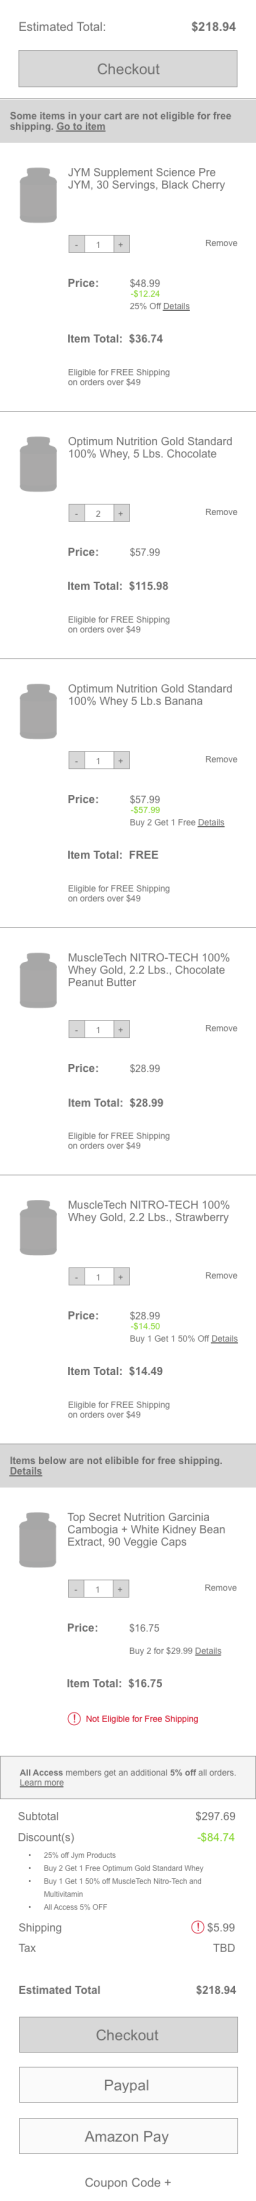 Cart With Promotions (Mobile)